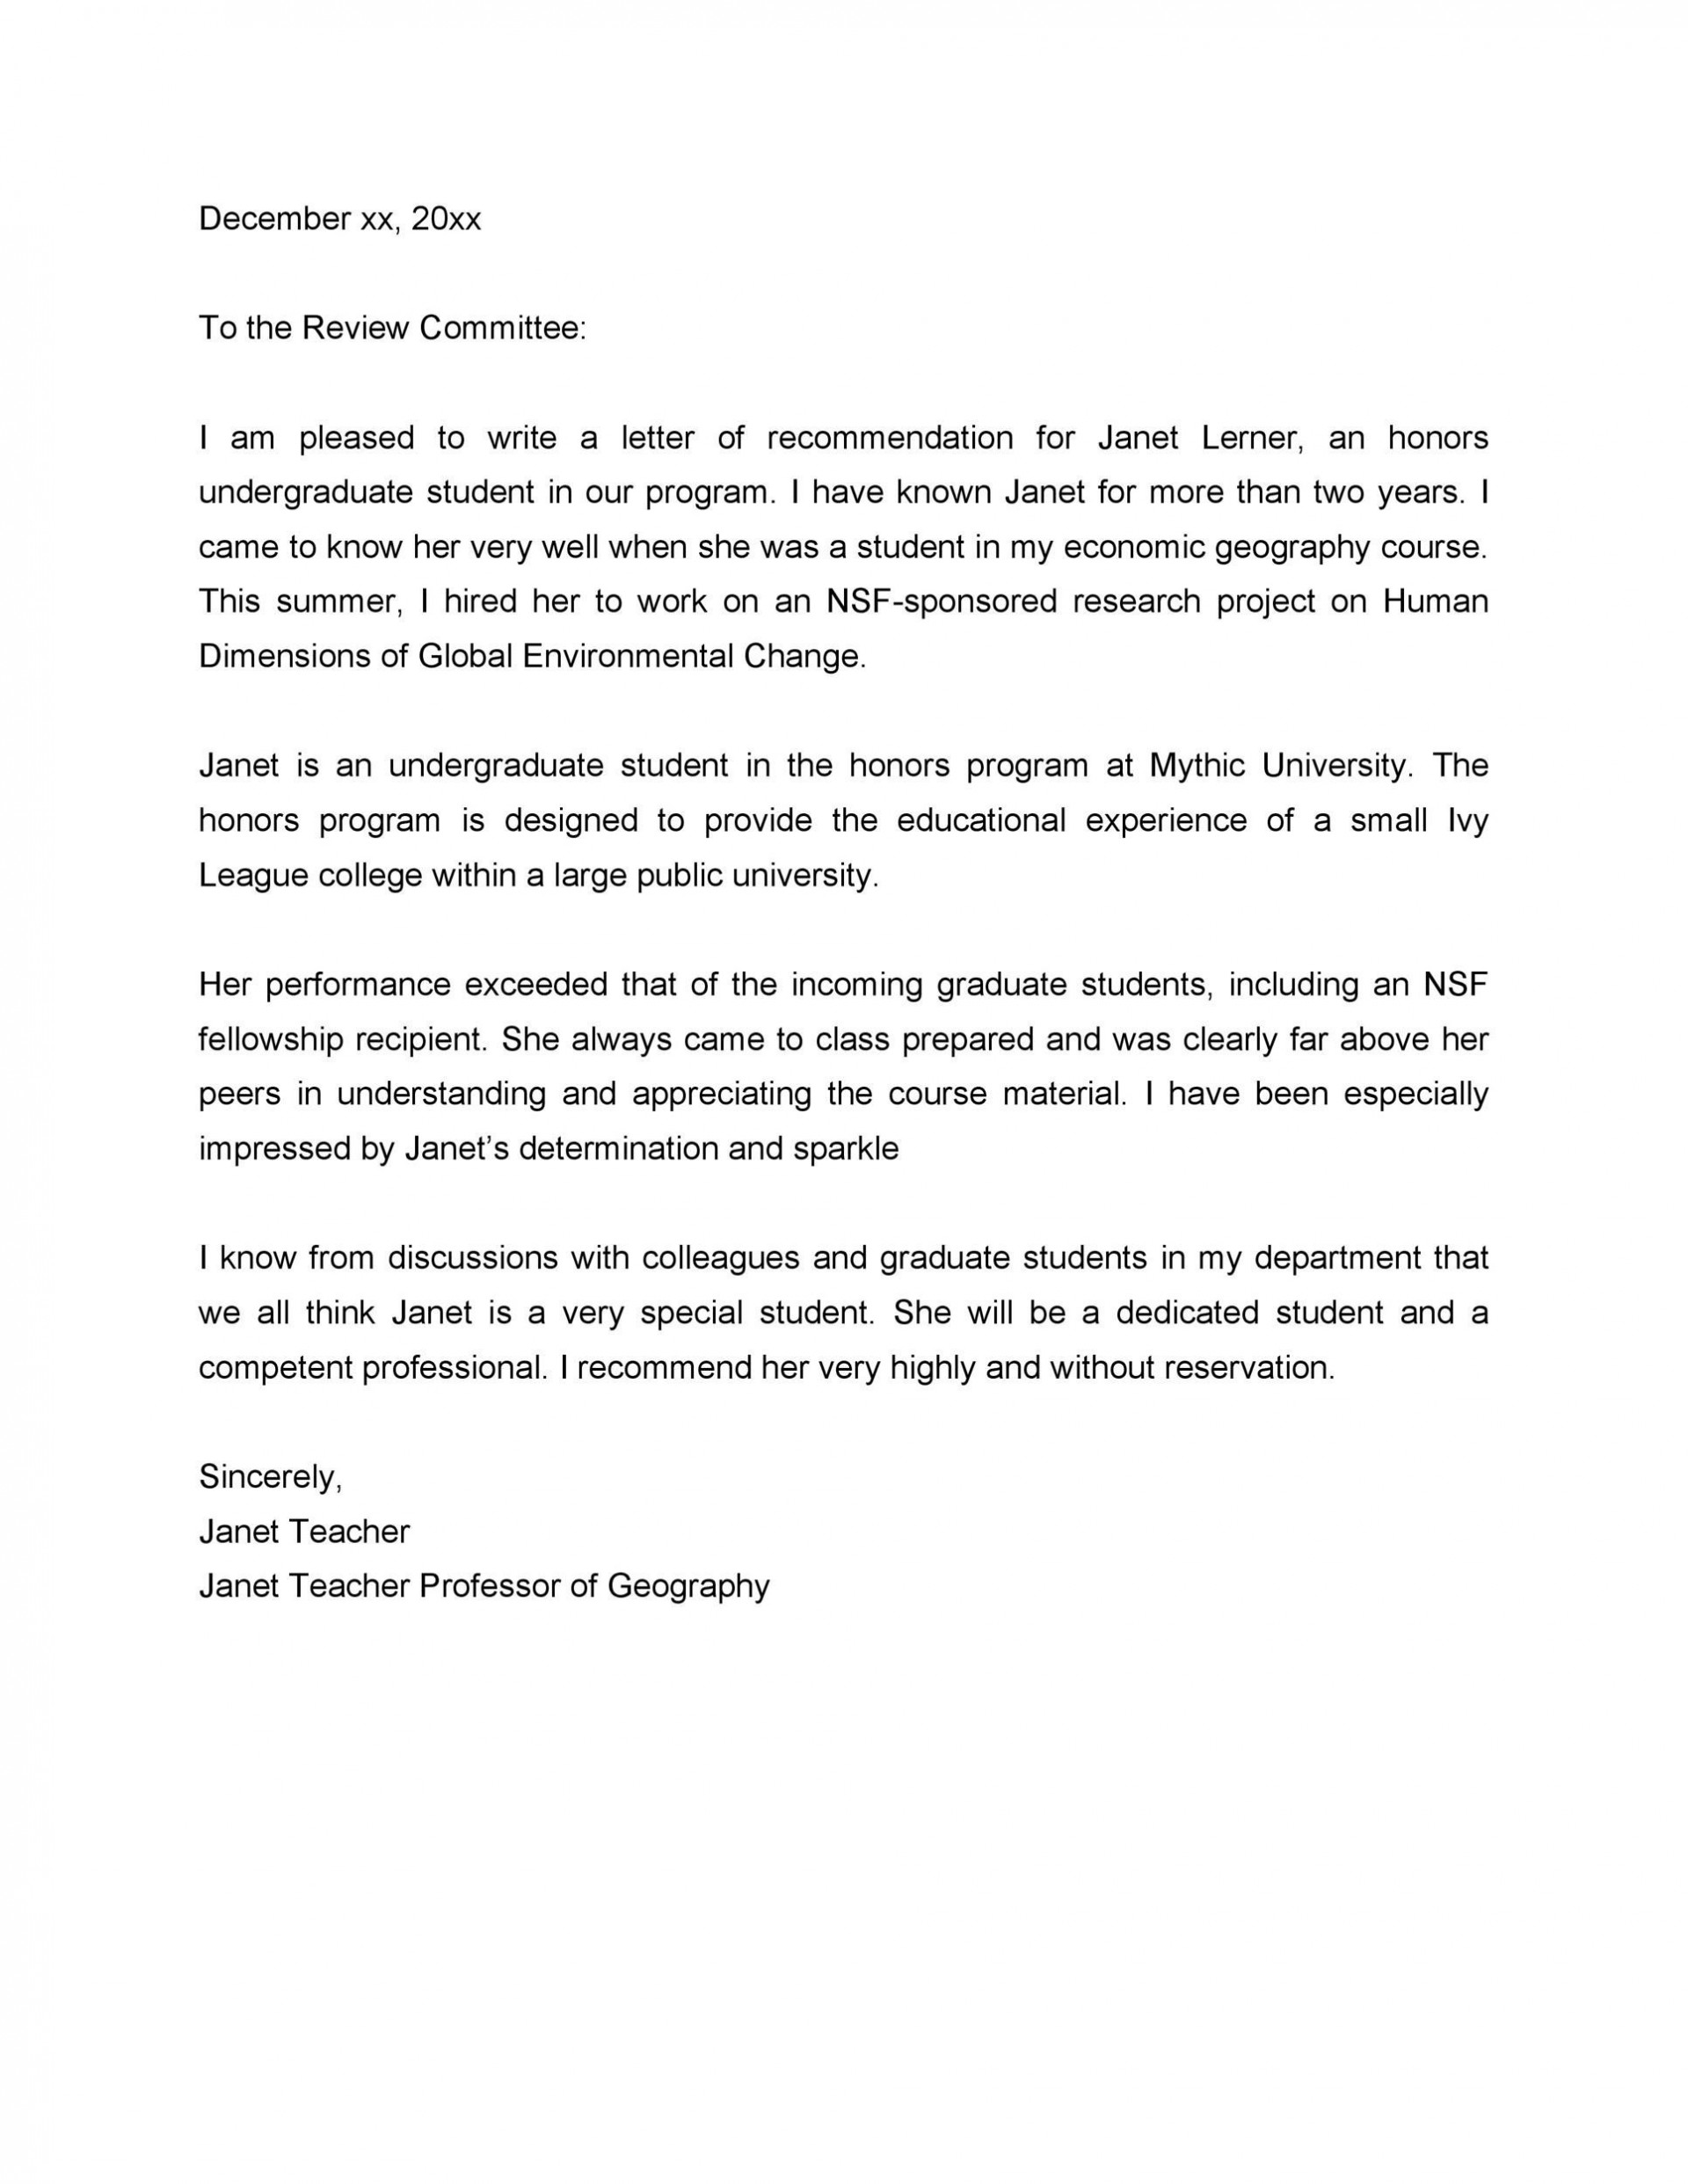 008 Stirring Letter Of Recommendation Template For College Student Image  Sample From Professor1920